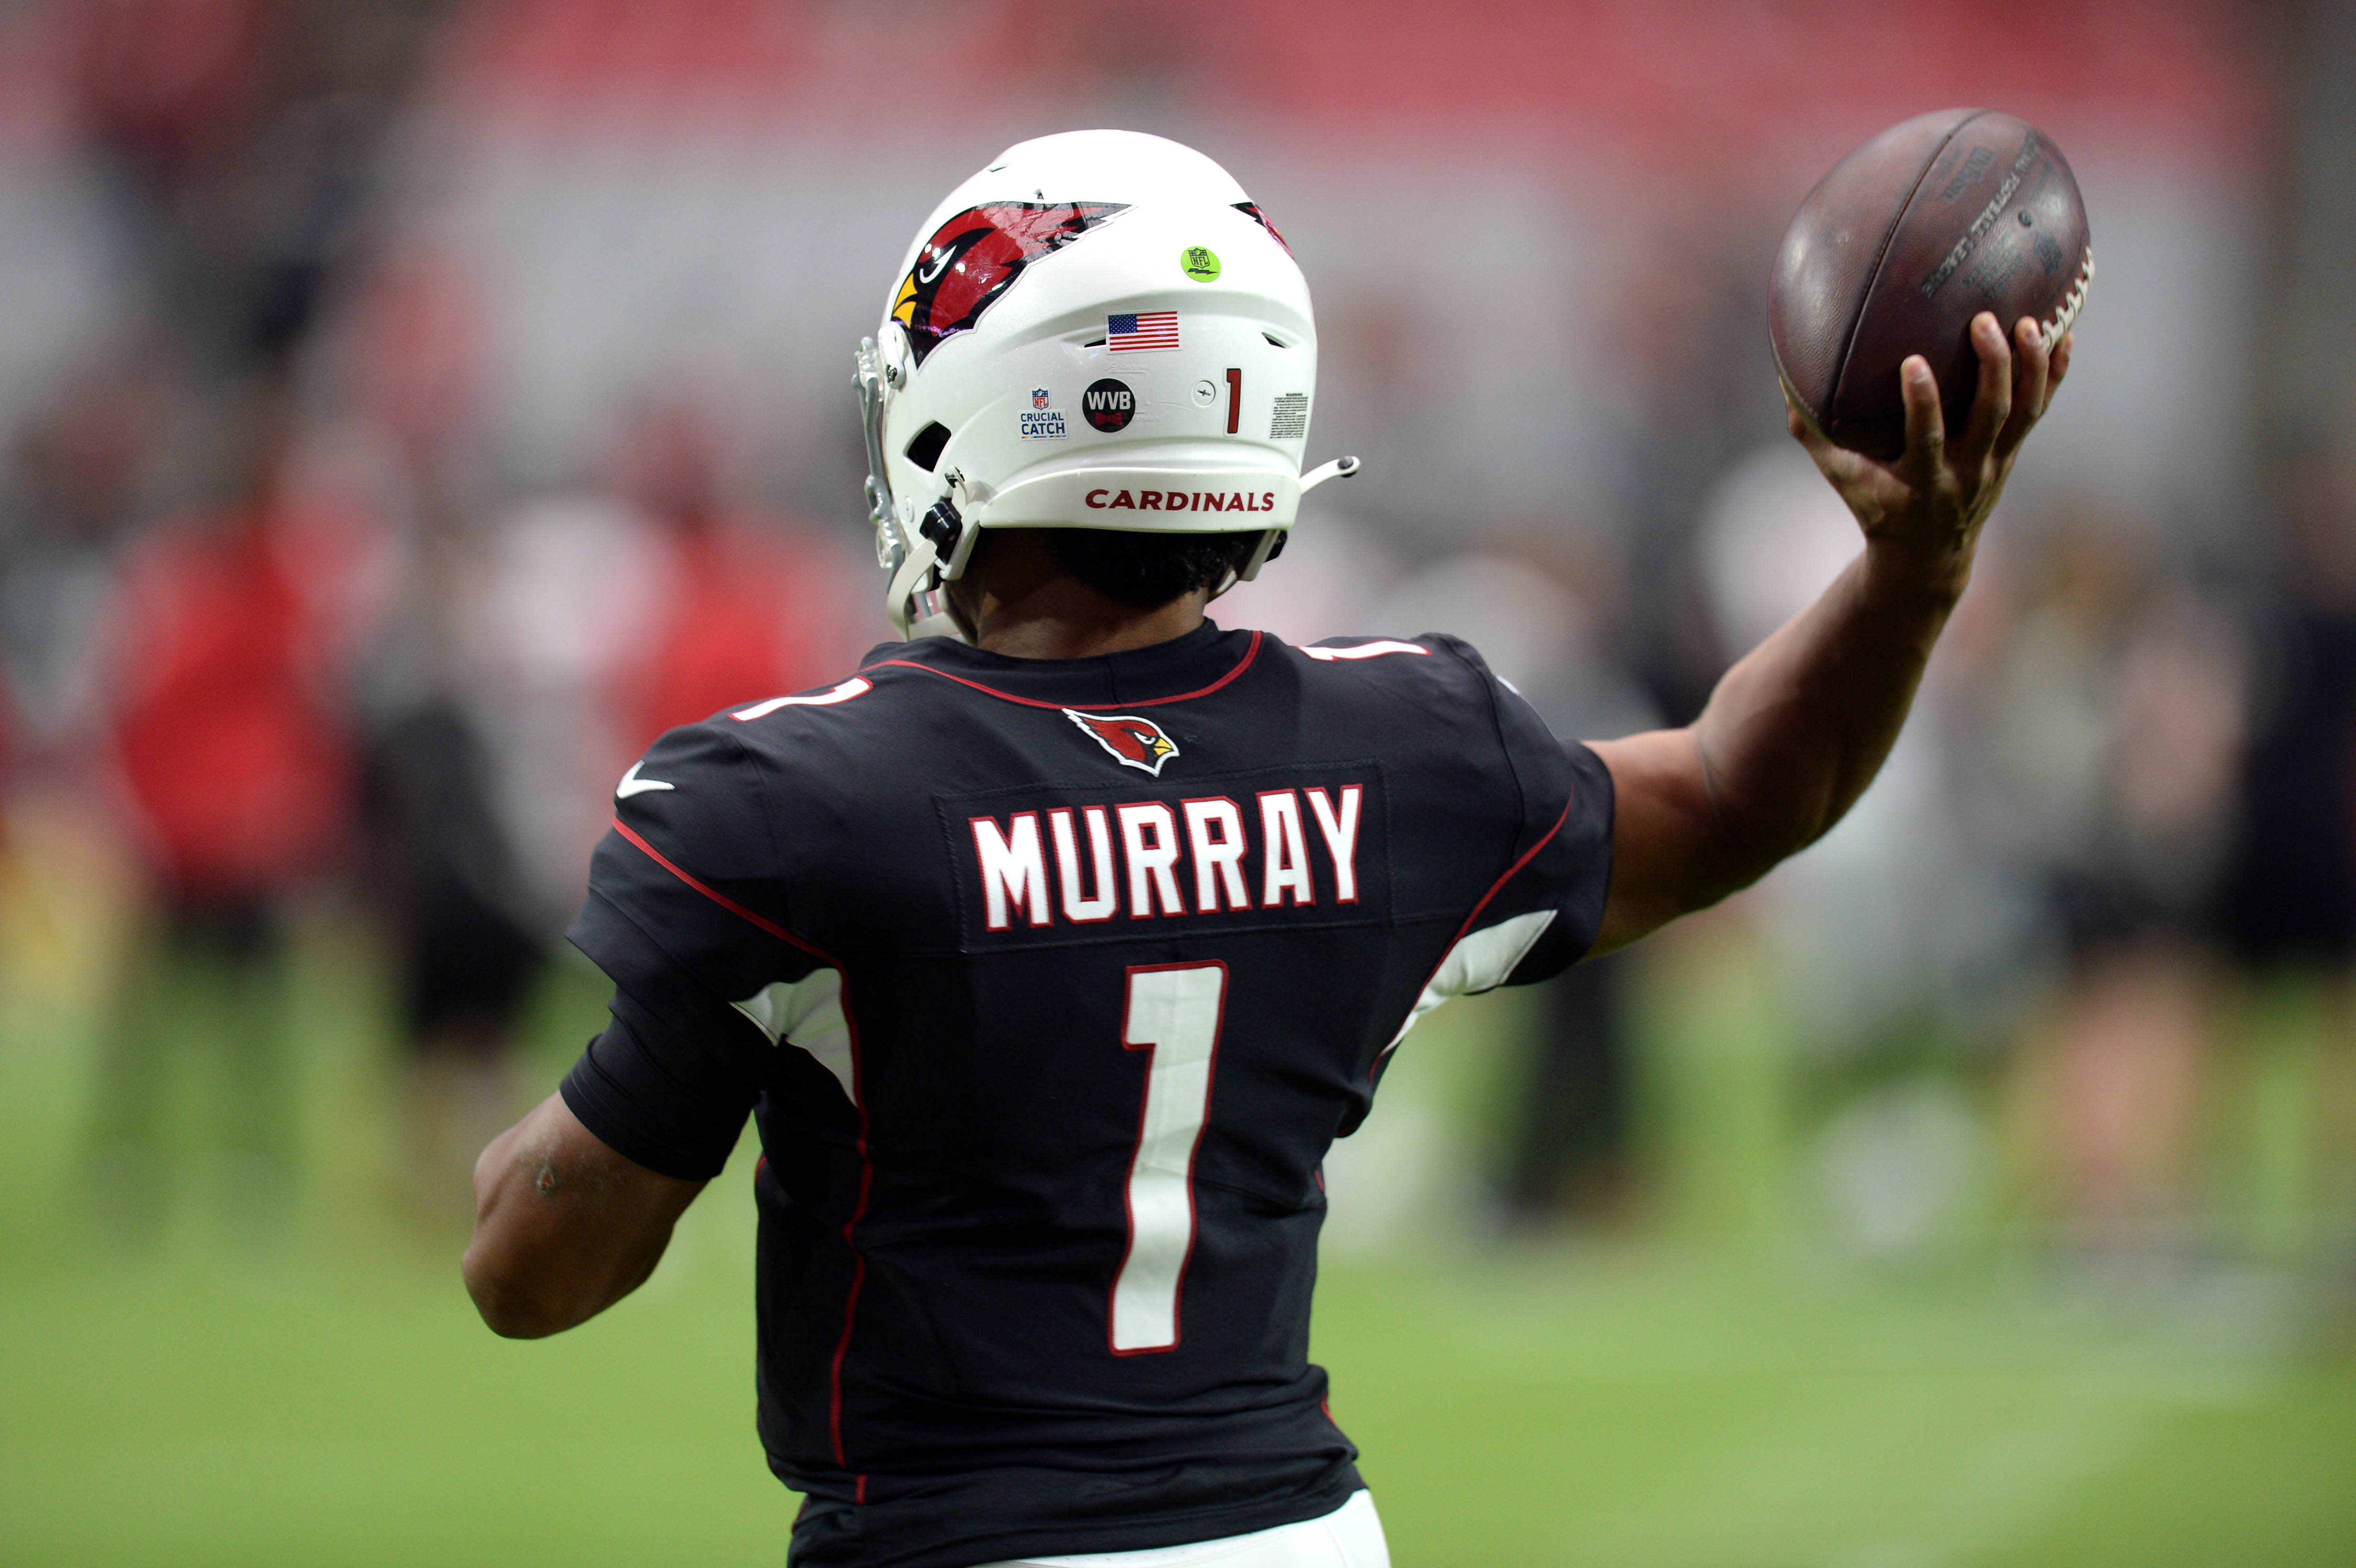 NFL Players You Should Start & Sit in Fantasy Football for Week 7